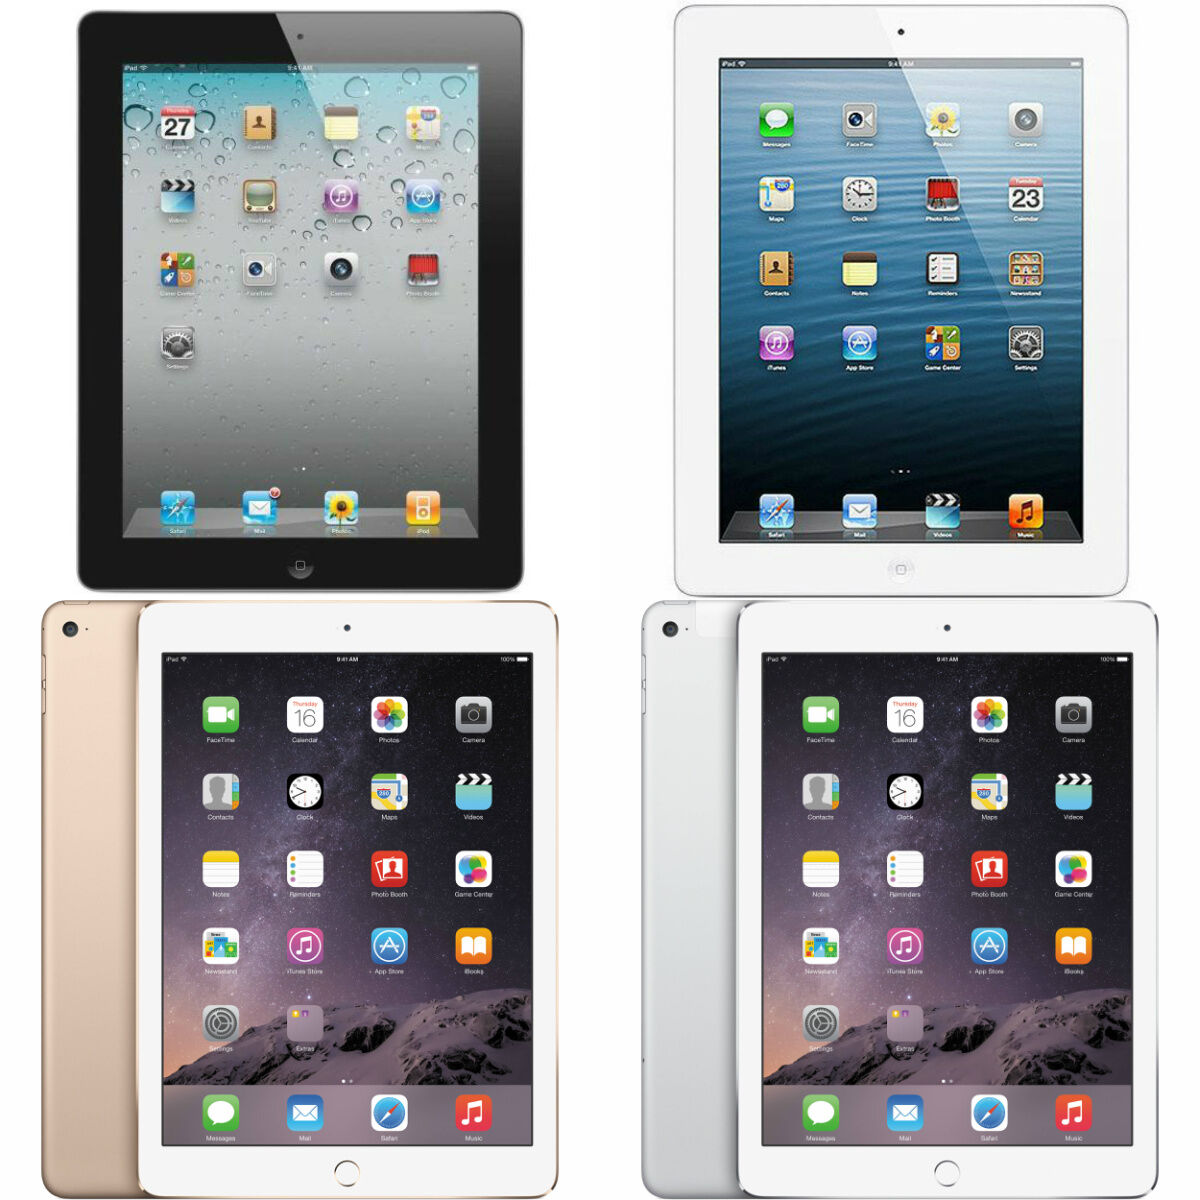 Ipad - Apple iPad 2, 3, 4, Air, or Air 2 WiFi 9.7in Tablet (Refurbished)